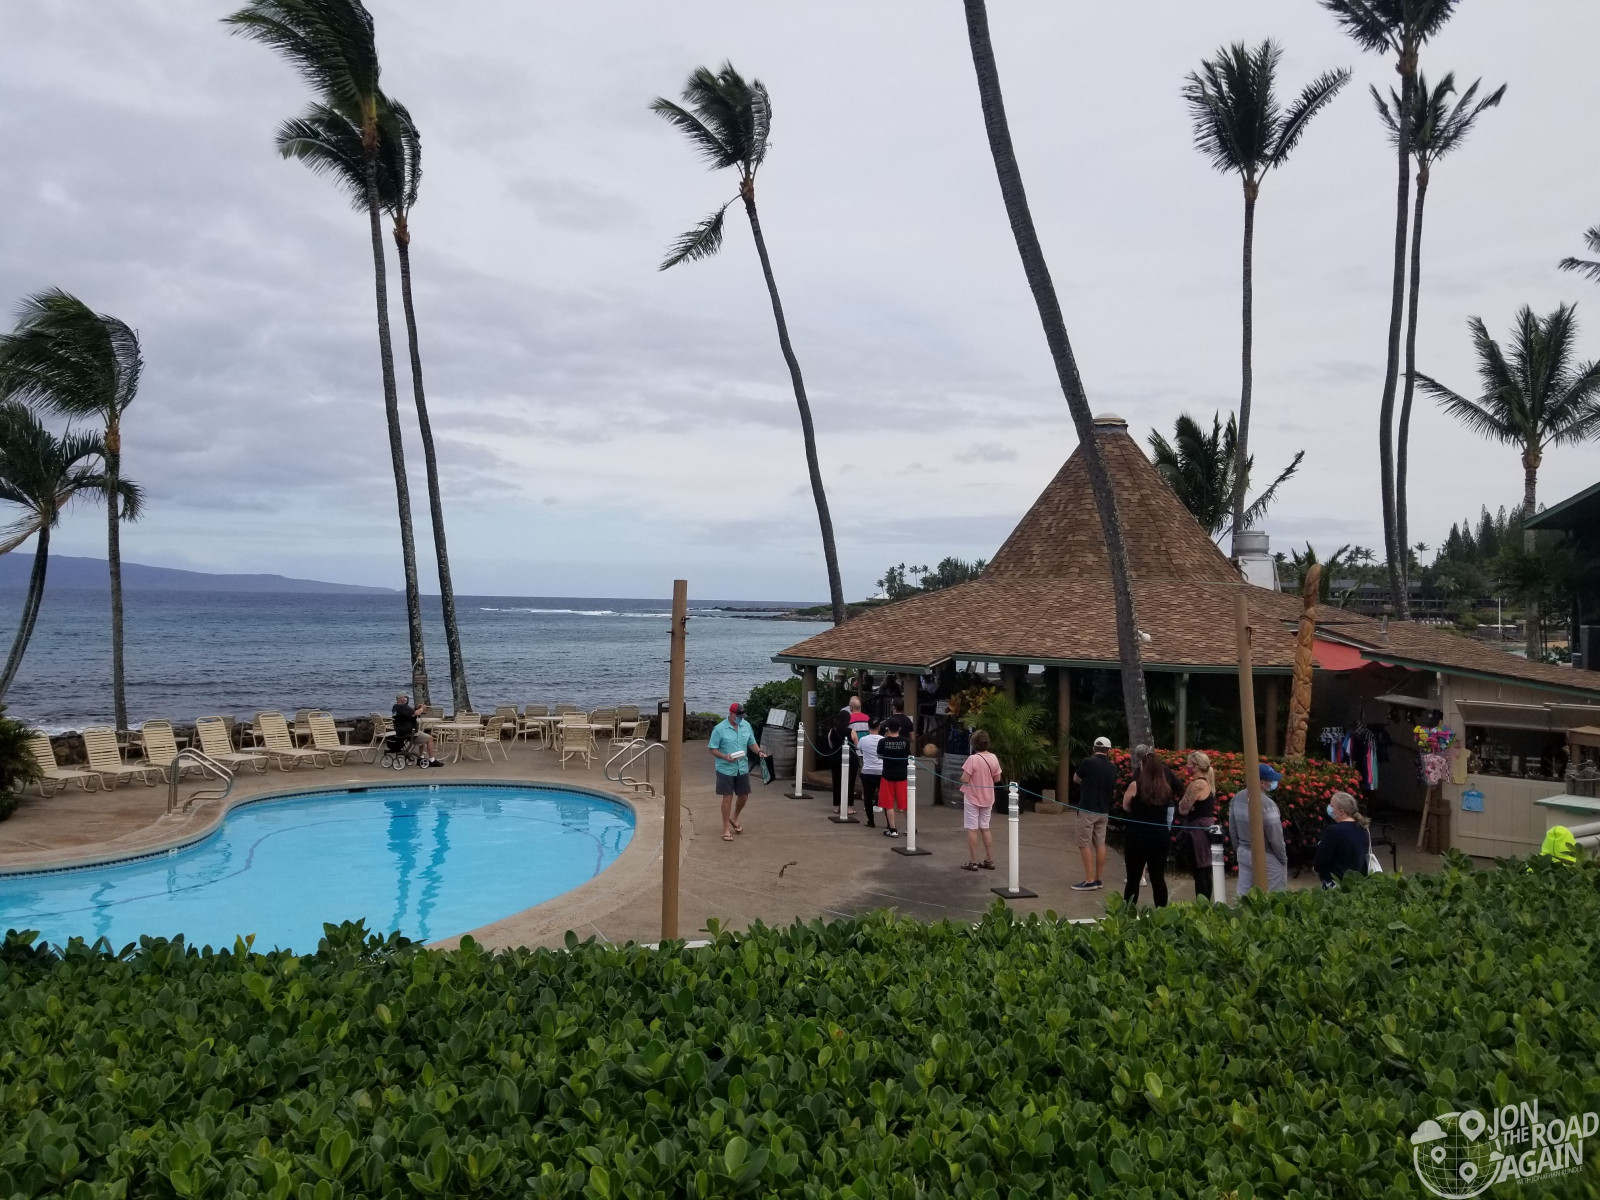 Eating out in Maui during COVID